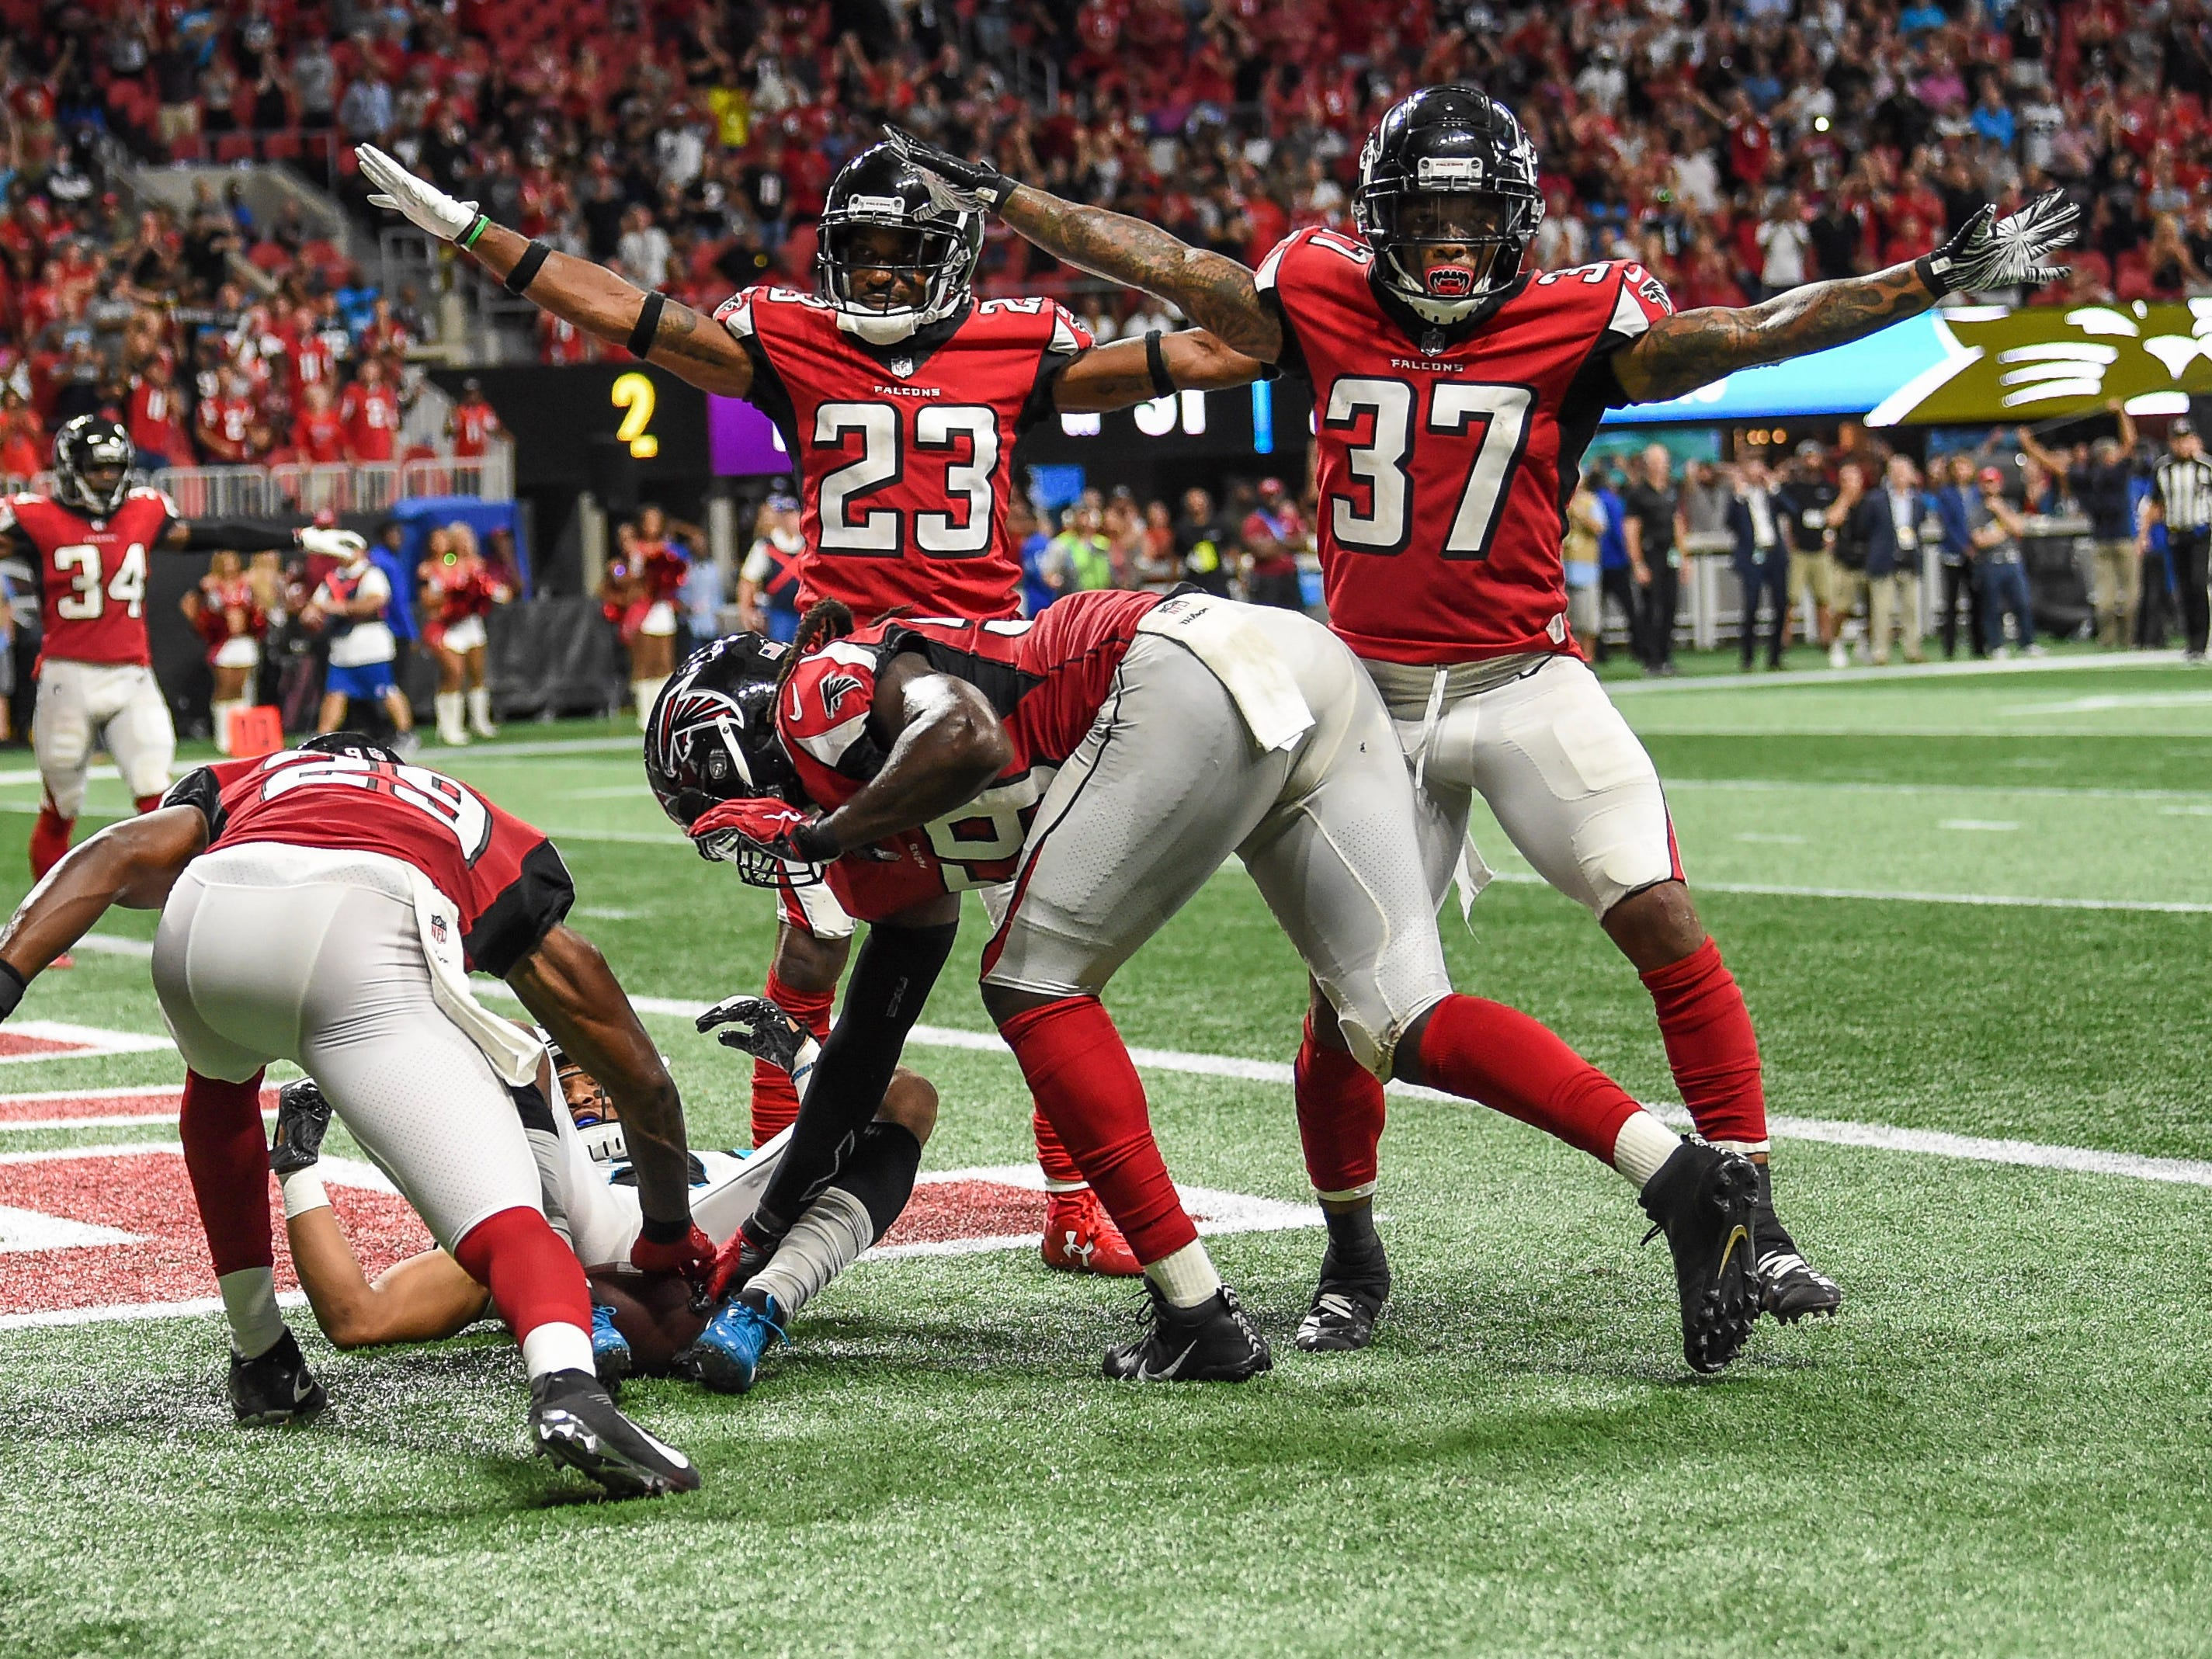 Sep 16, 2018; Atlanta, GA, USA; Atlanta Falcons defensive back Robert Alford (23) and cornerback Ricardo Allen (37) and linebacker De'Vondre Campbell (59) react after defending Carolina Panthers wide receiver DJ Moore (12) on the last play of the game at Mercedes-Benz Stadium. Mandatory Credit: Dale Zanine-USA TODAY Sports